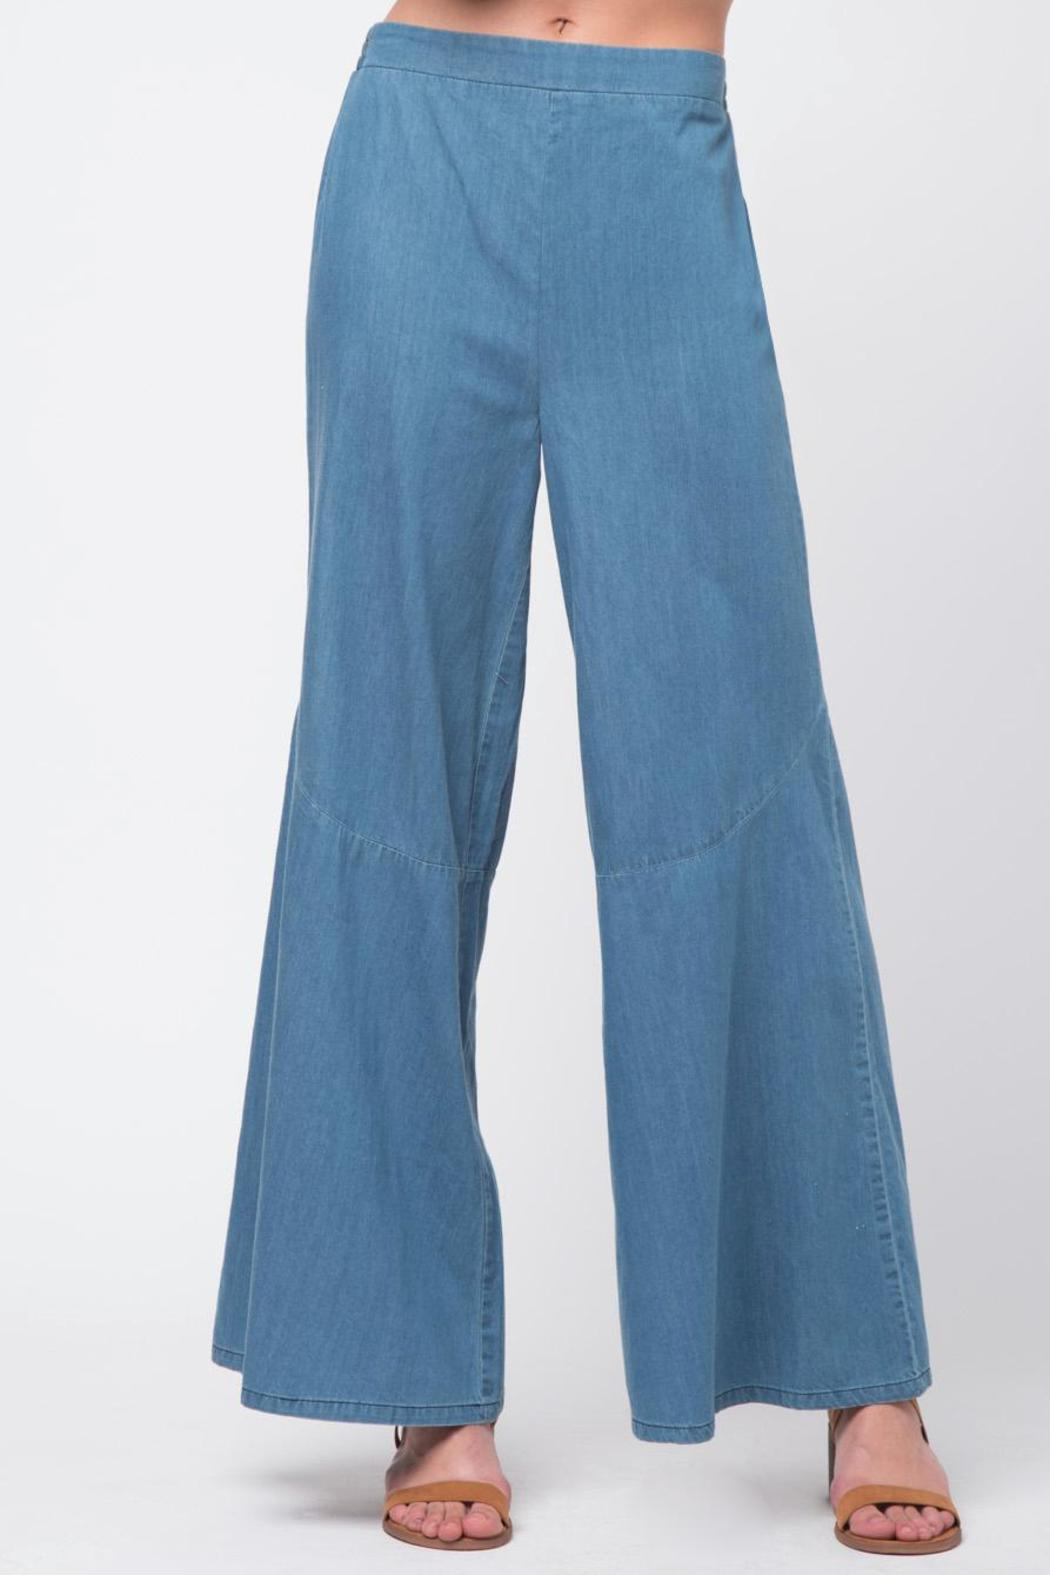 Movint Bottom Flare Detail Pants - Main Image